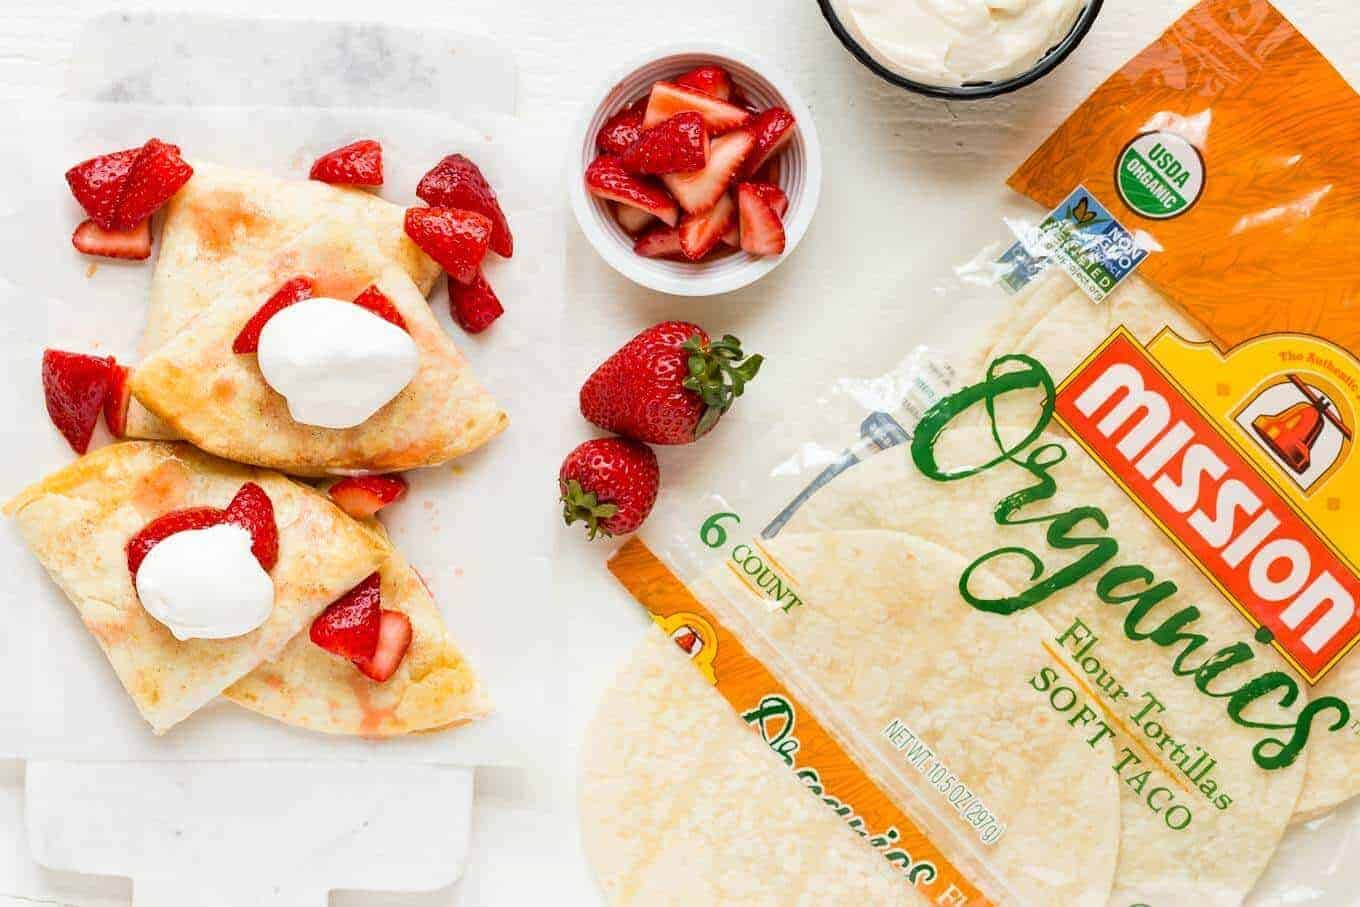 Strawberry Cheesecake Quesadillas with Mission Organics Flour Tortillas.